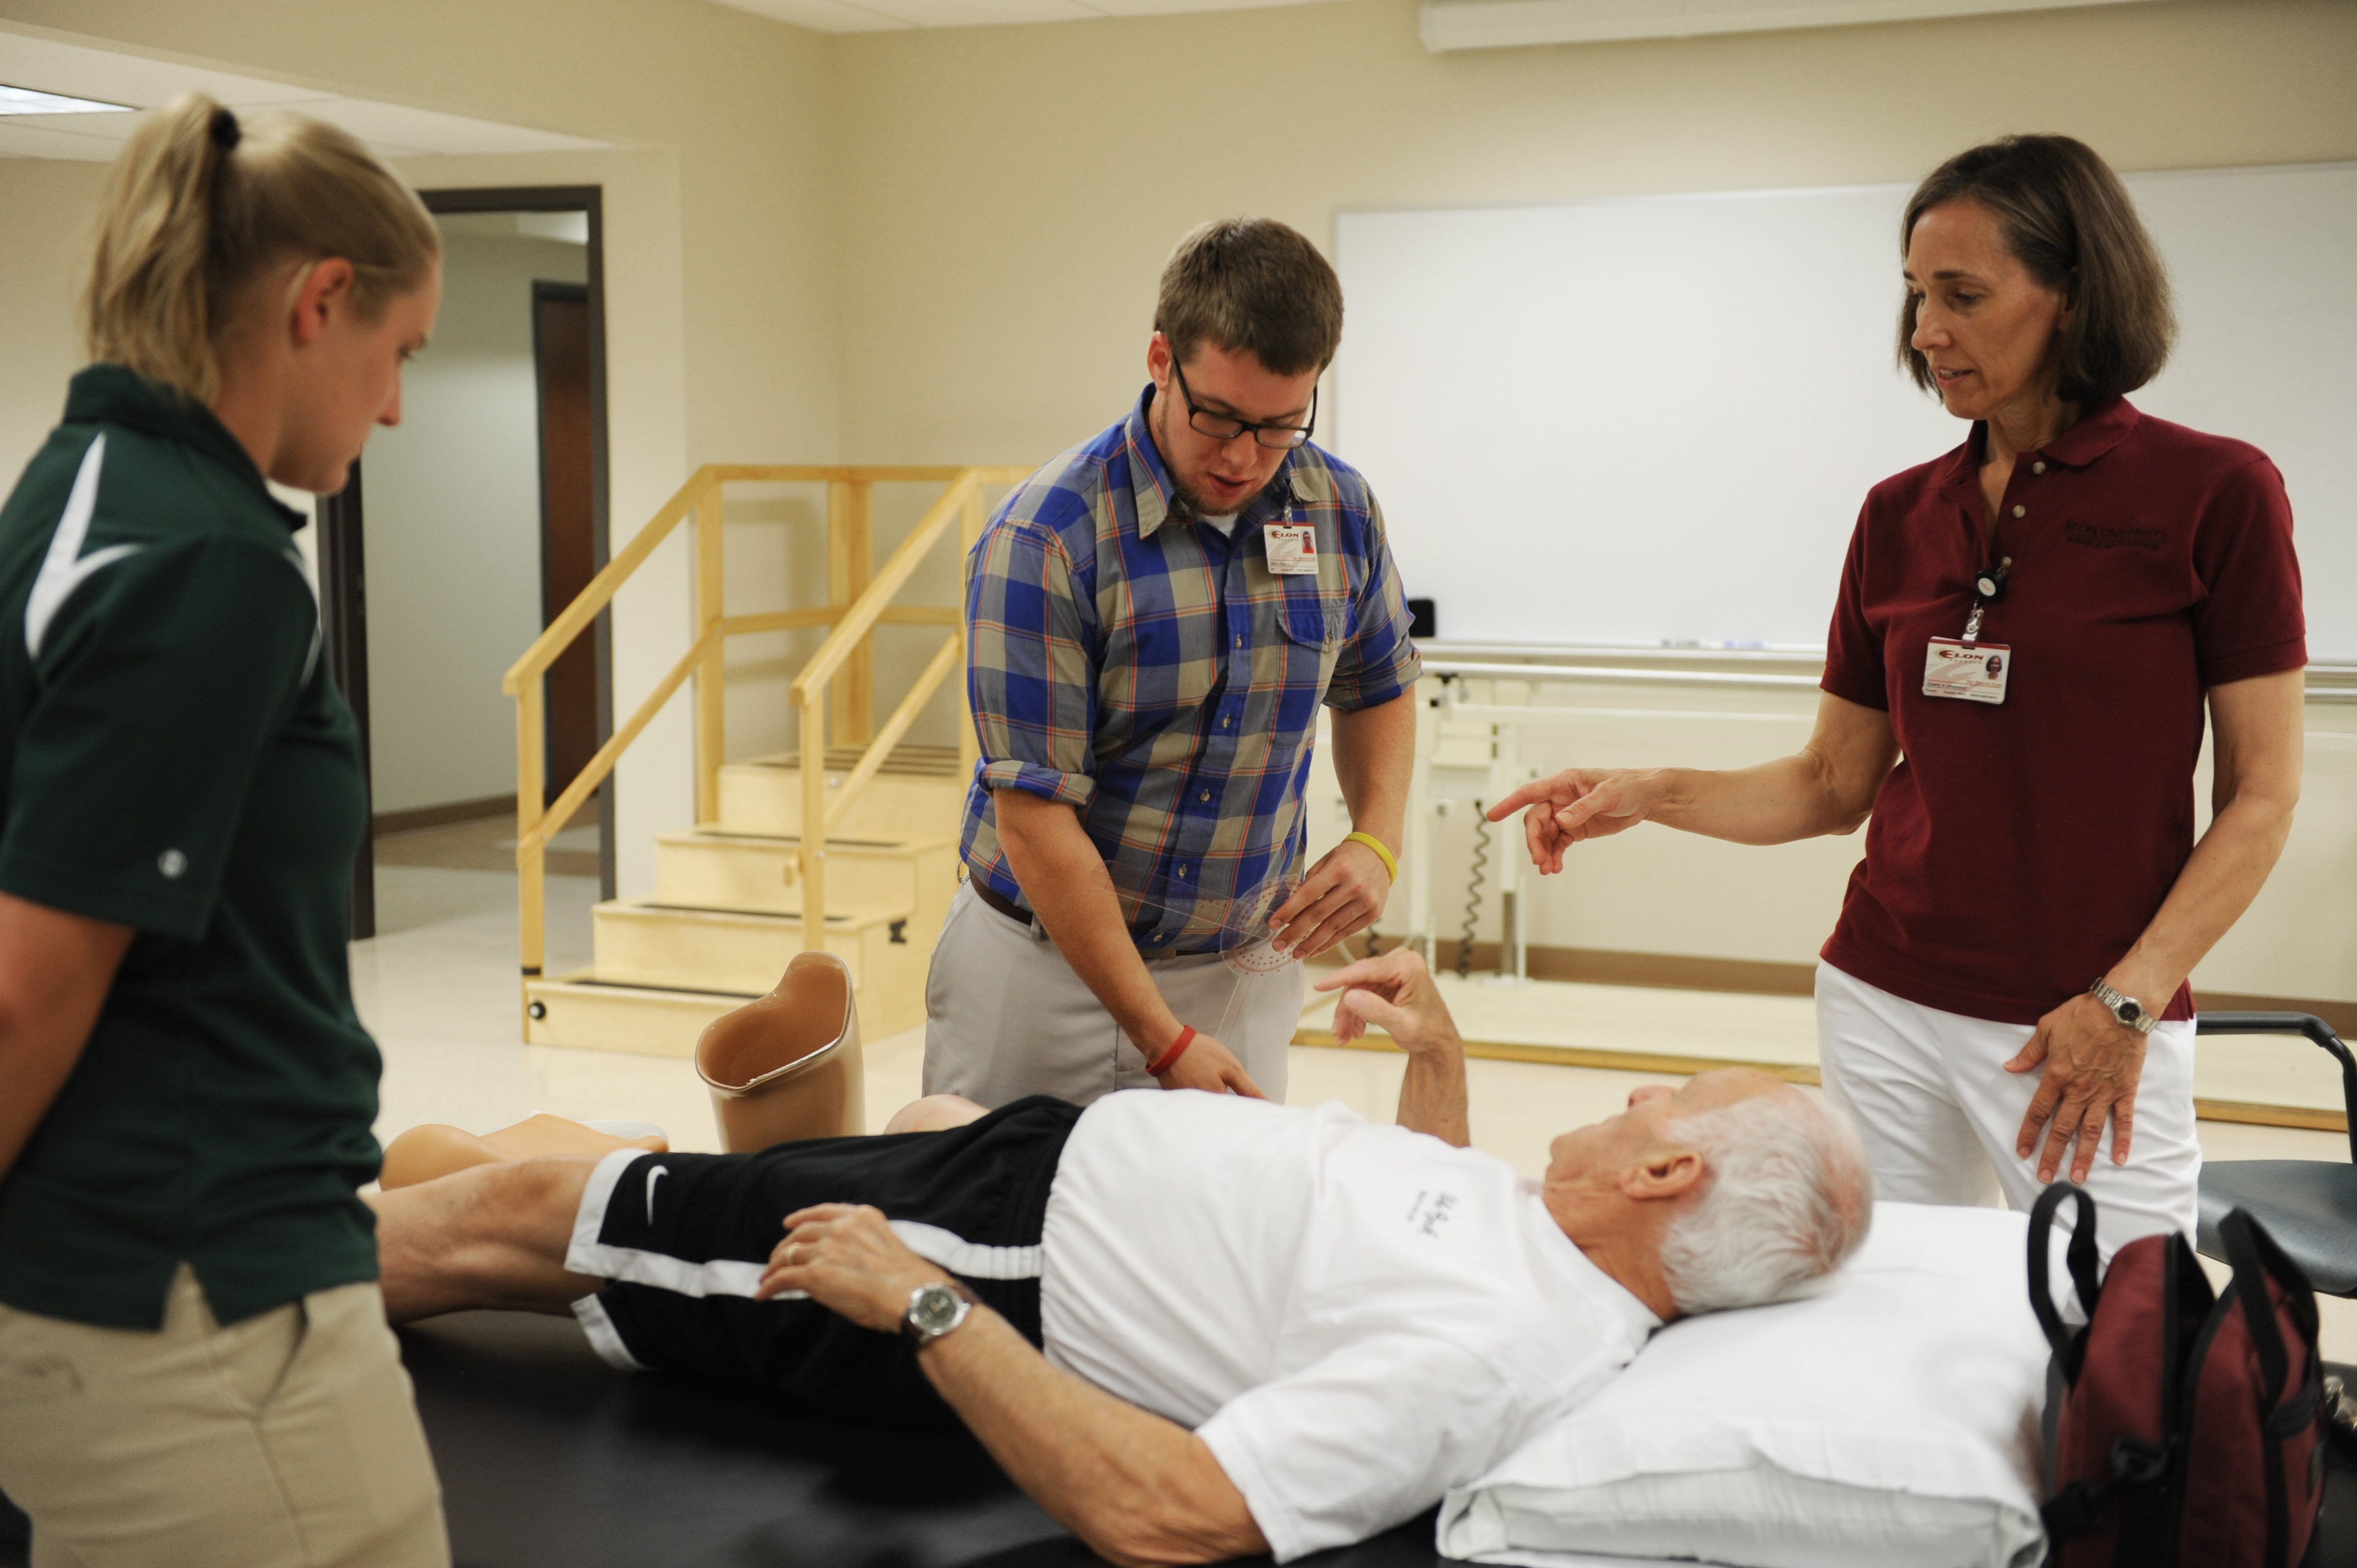 DPT professor Charity Johansson and students work with adults from the community as part of a clinical activity.